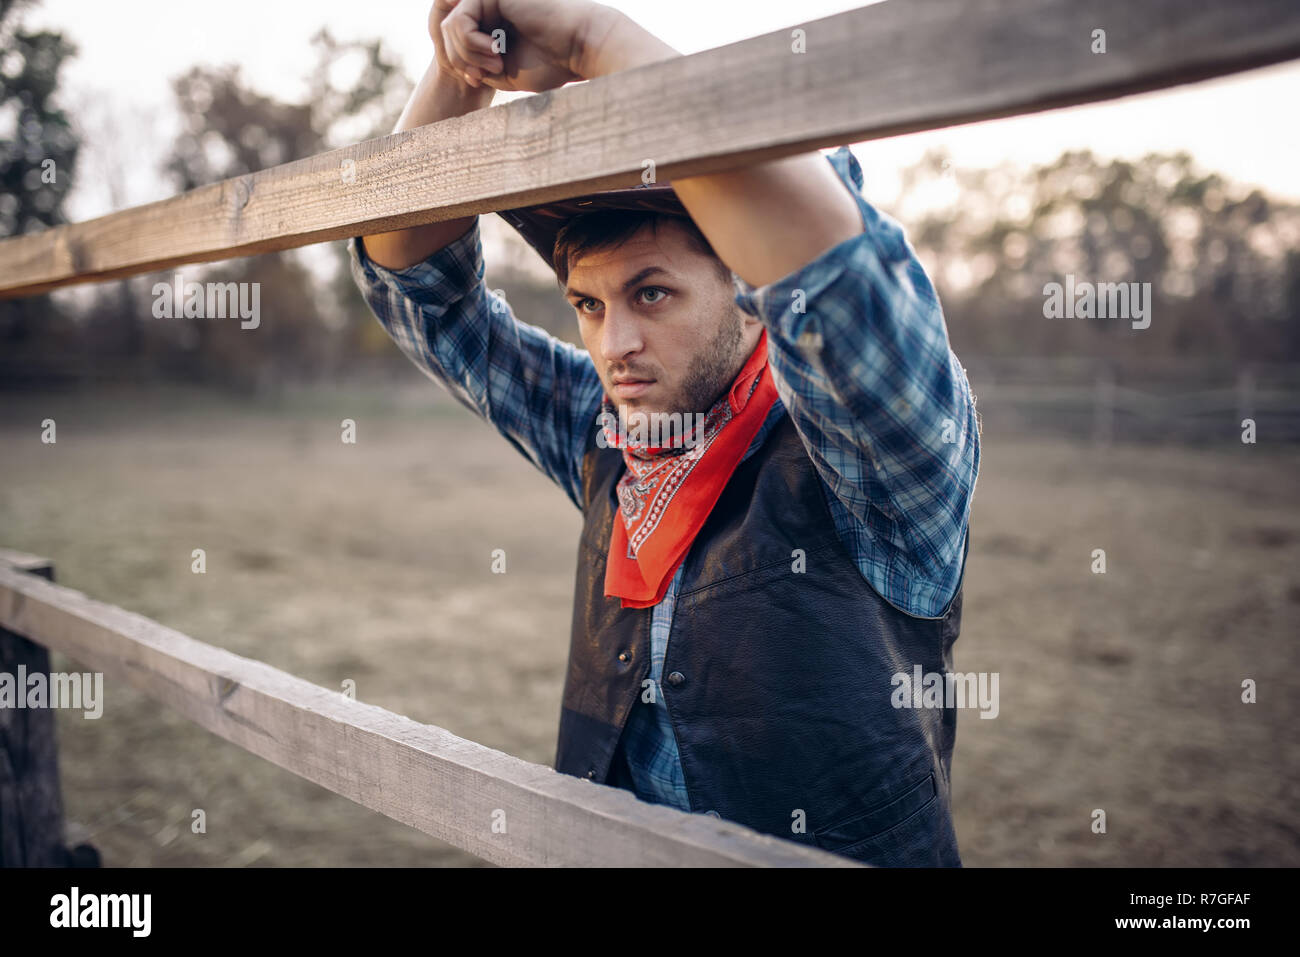 Young cowboy in leather jacket and hat poses on ranch 5add2838b6c2